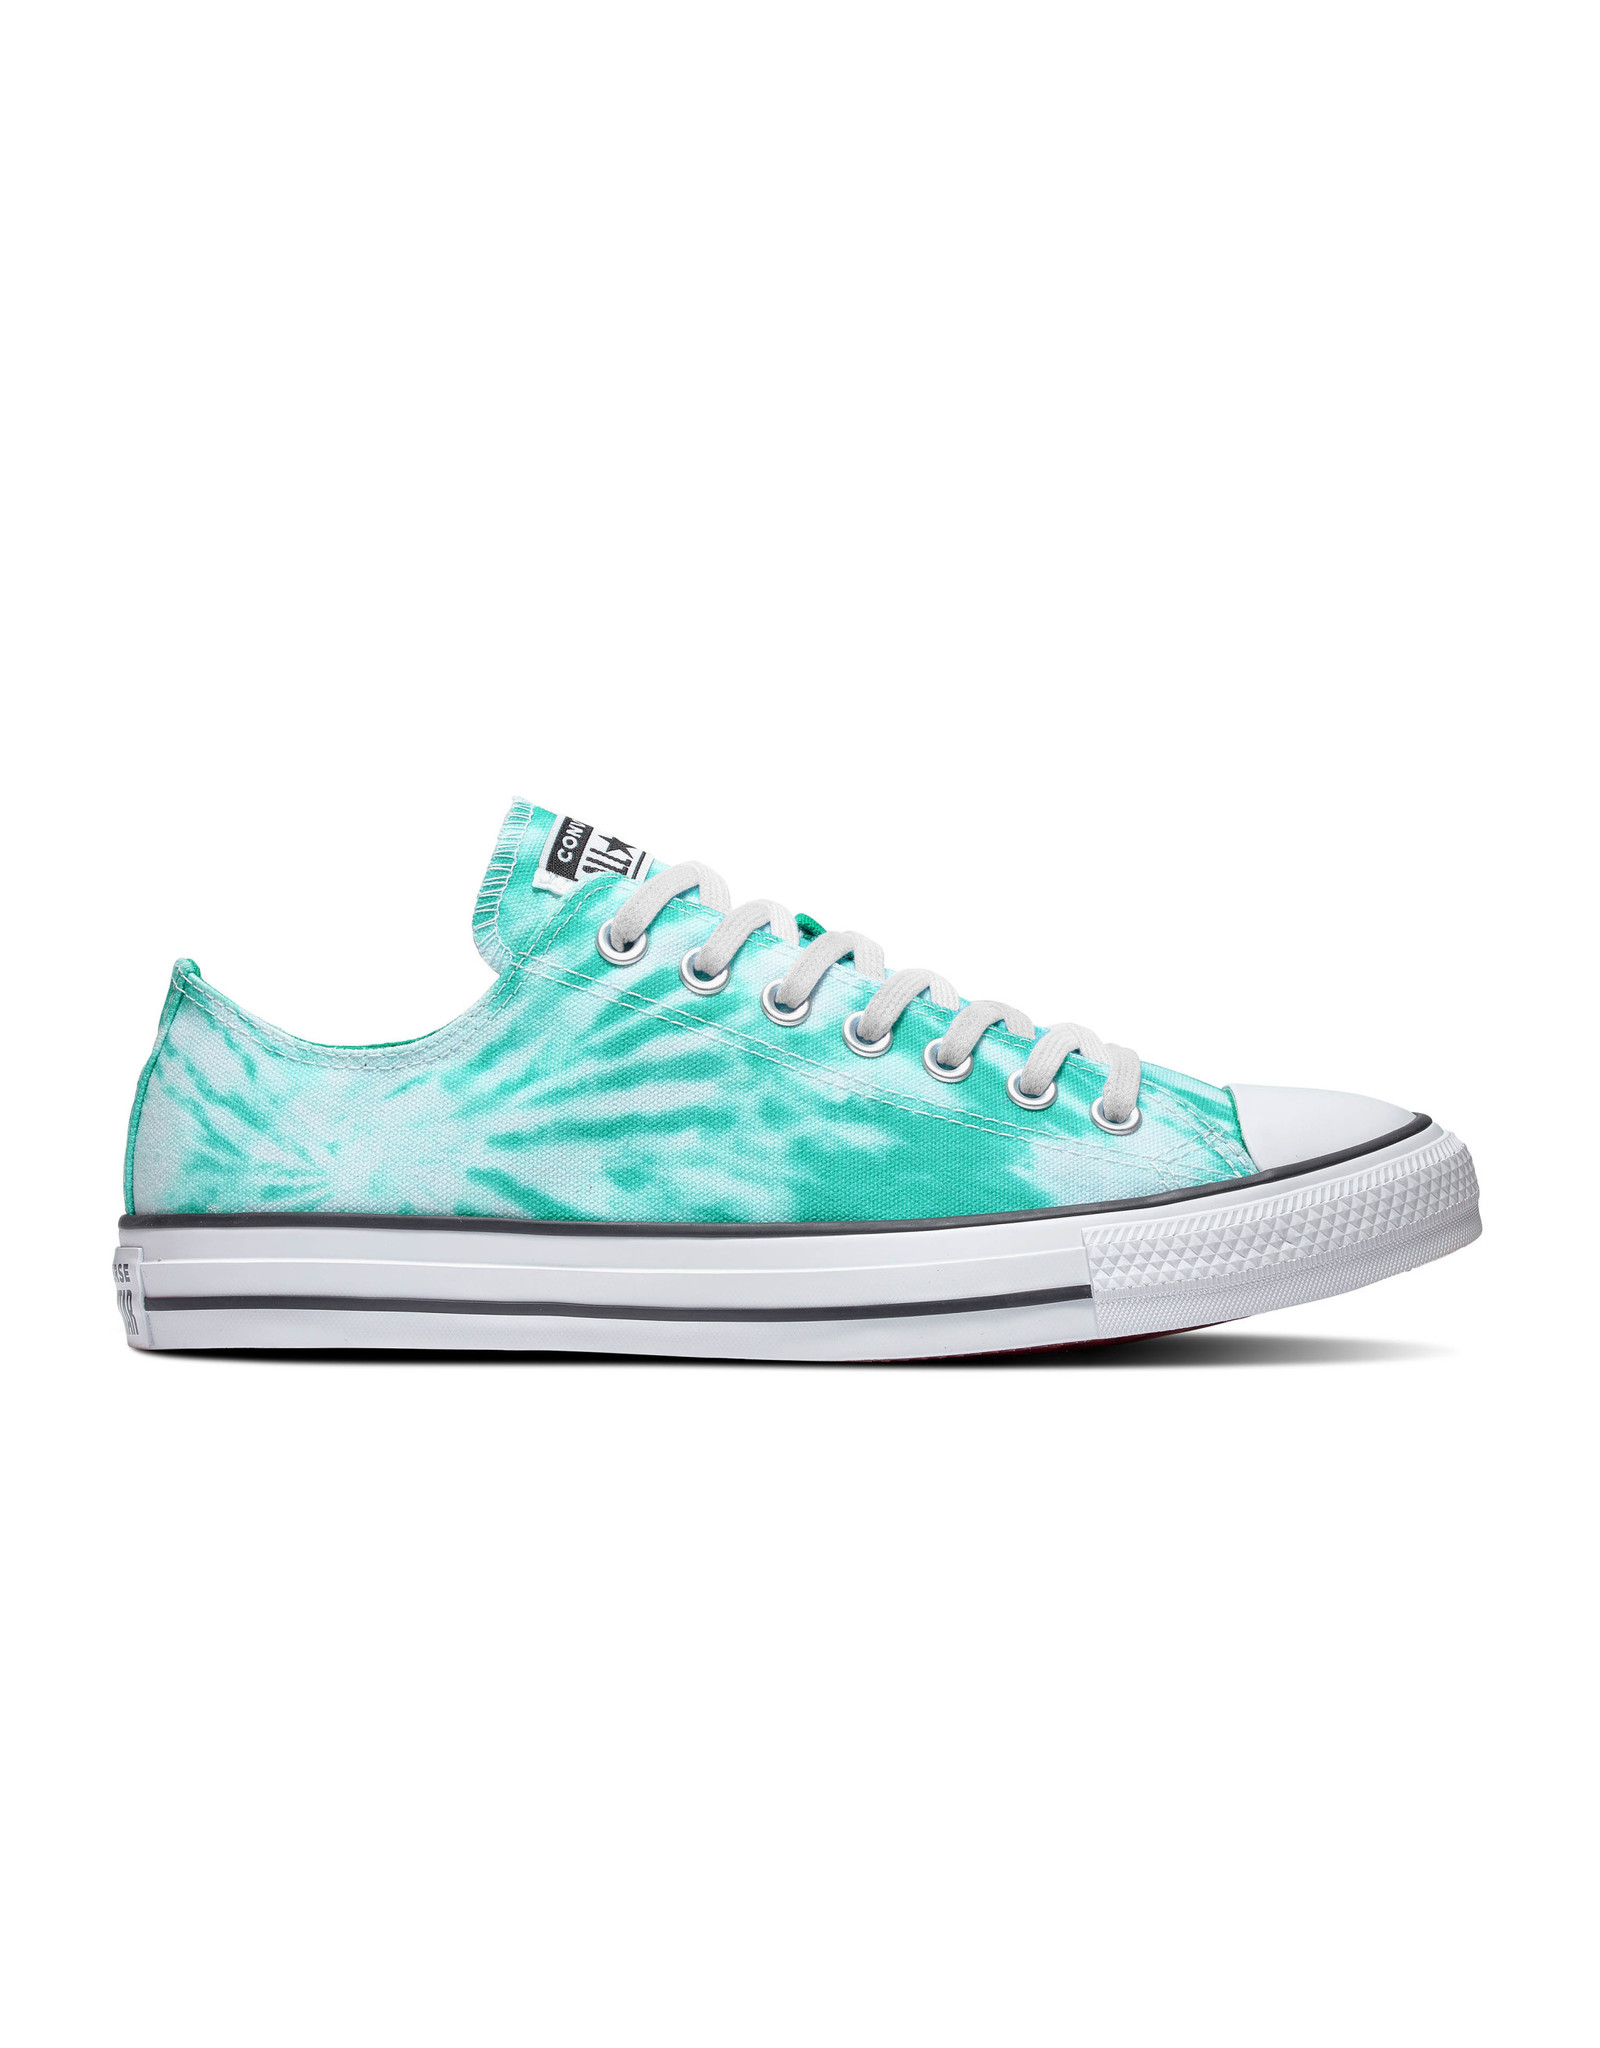 CONVERSE CHUCK TAYLOR OX MALACHITE/GAME ROYAL/WHITE C14DYG-167930C